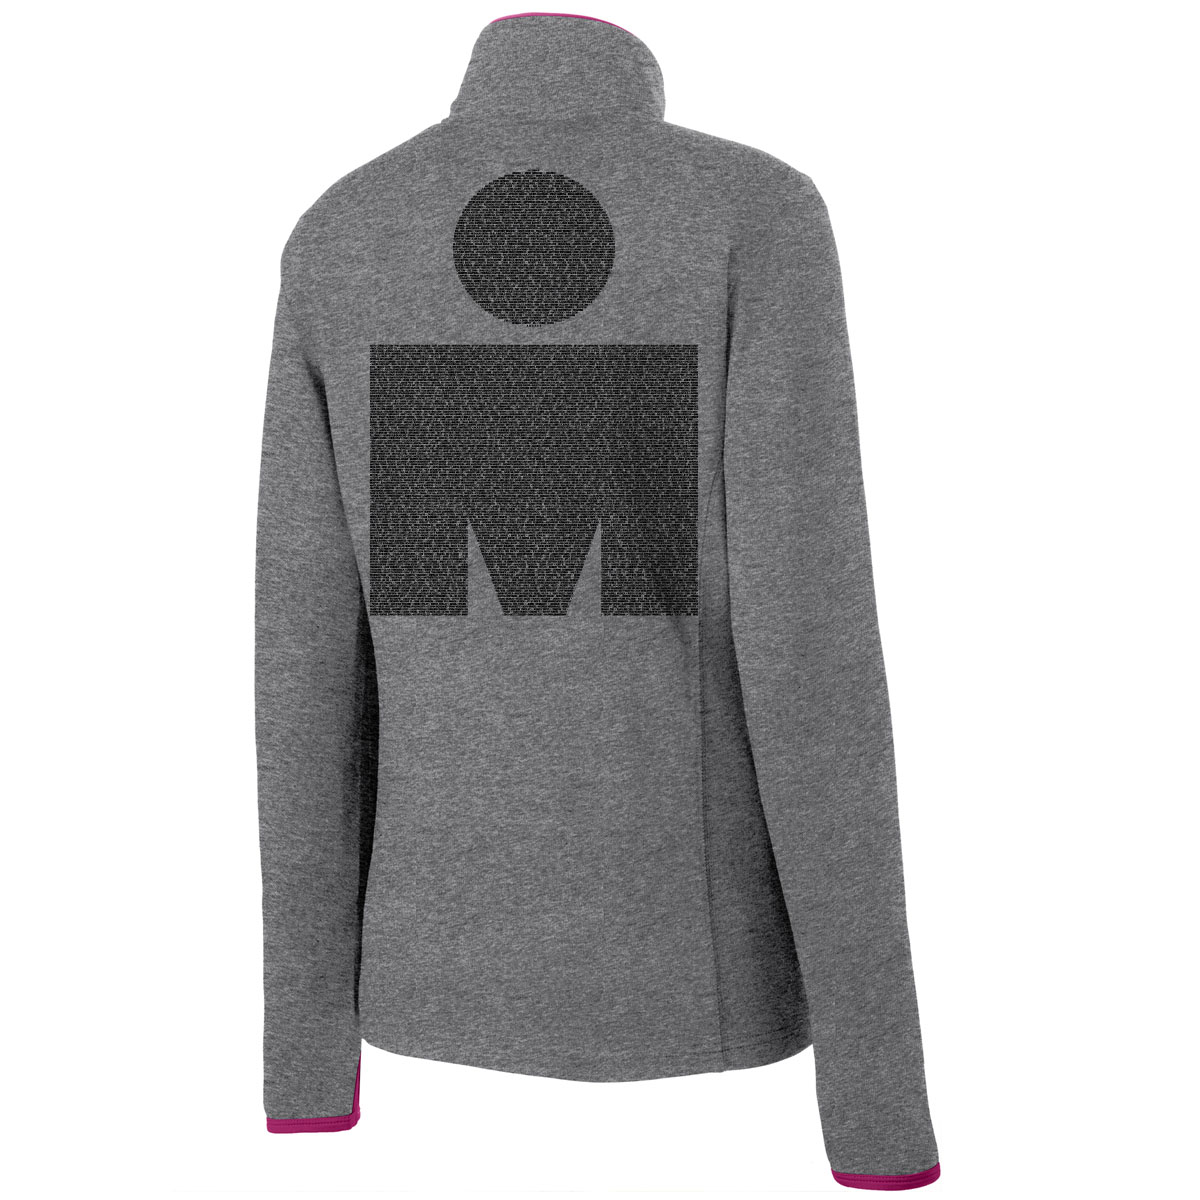 IRONMAN SANTA ROSA 2019 WOMEN'S FULL ZIP NAME FLEECE